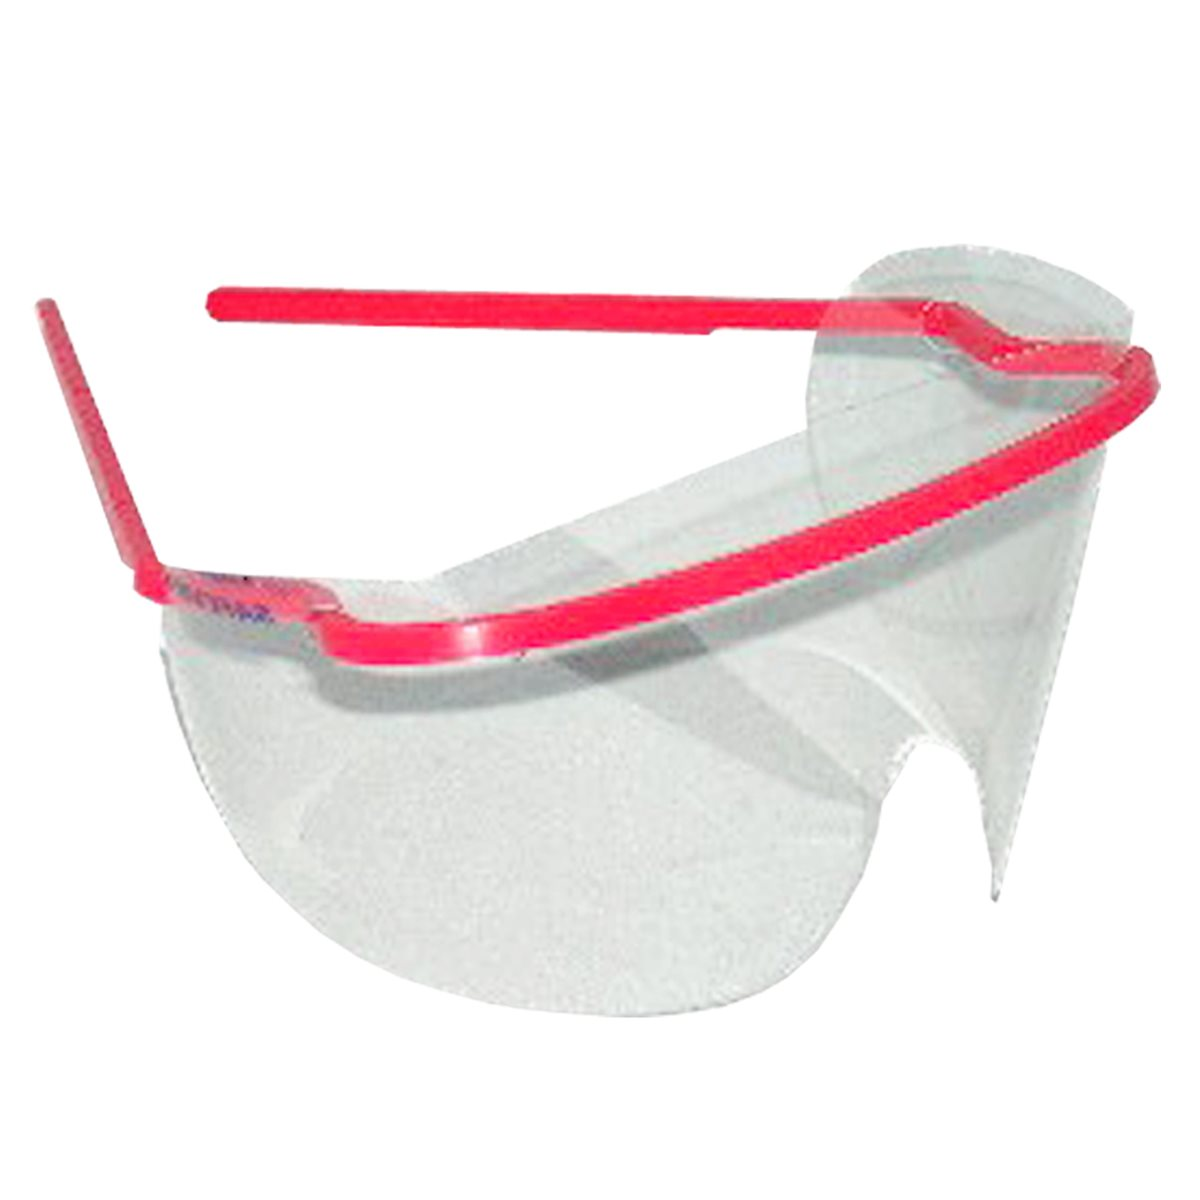 Goggles Frame Image